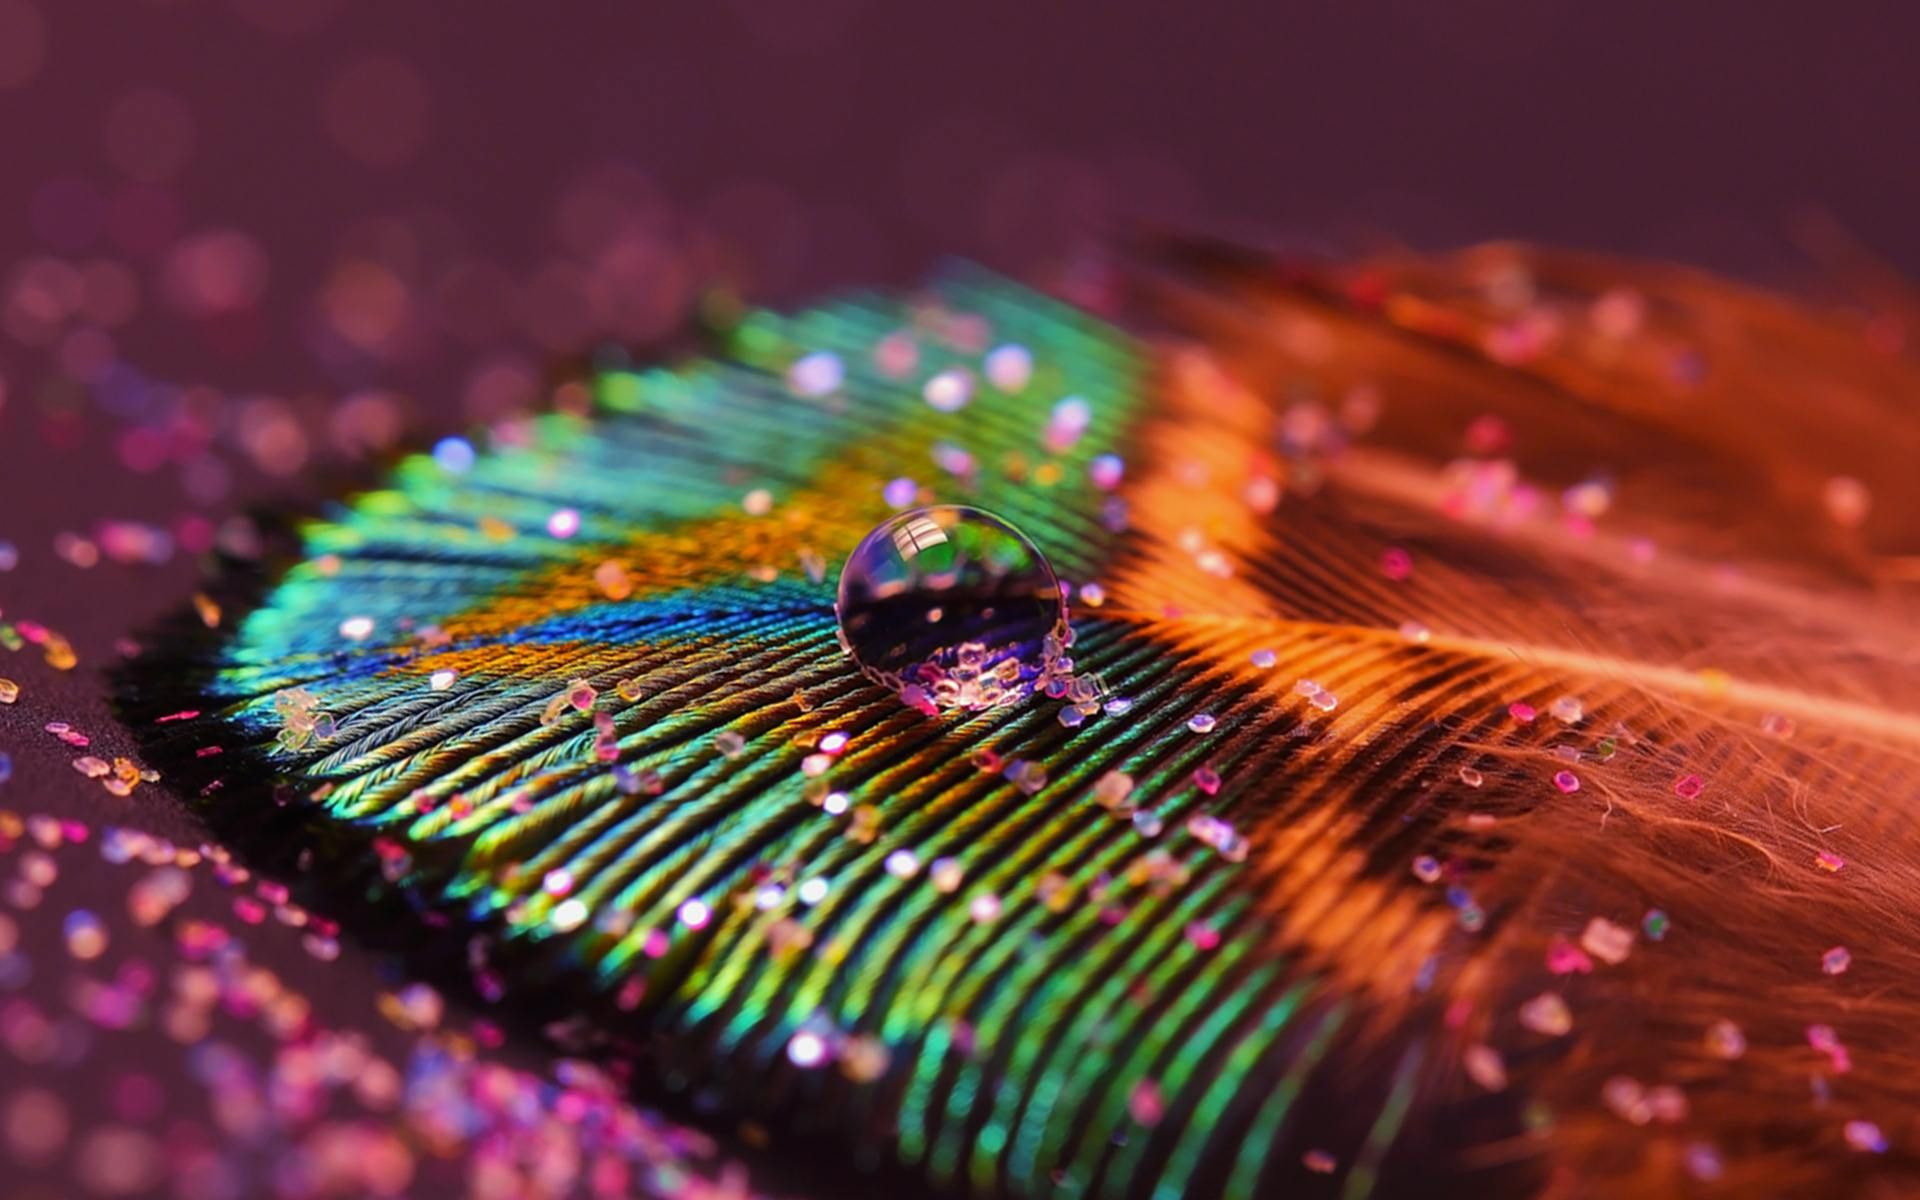 Wallpapers Of Peacock Feathers Hd 2015 Wallpaper Cave HD Wallpapers Download Free Images Wallpaper [1000image.com]